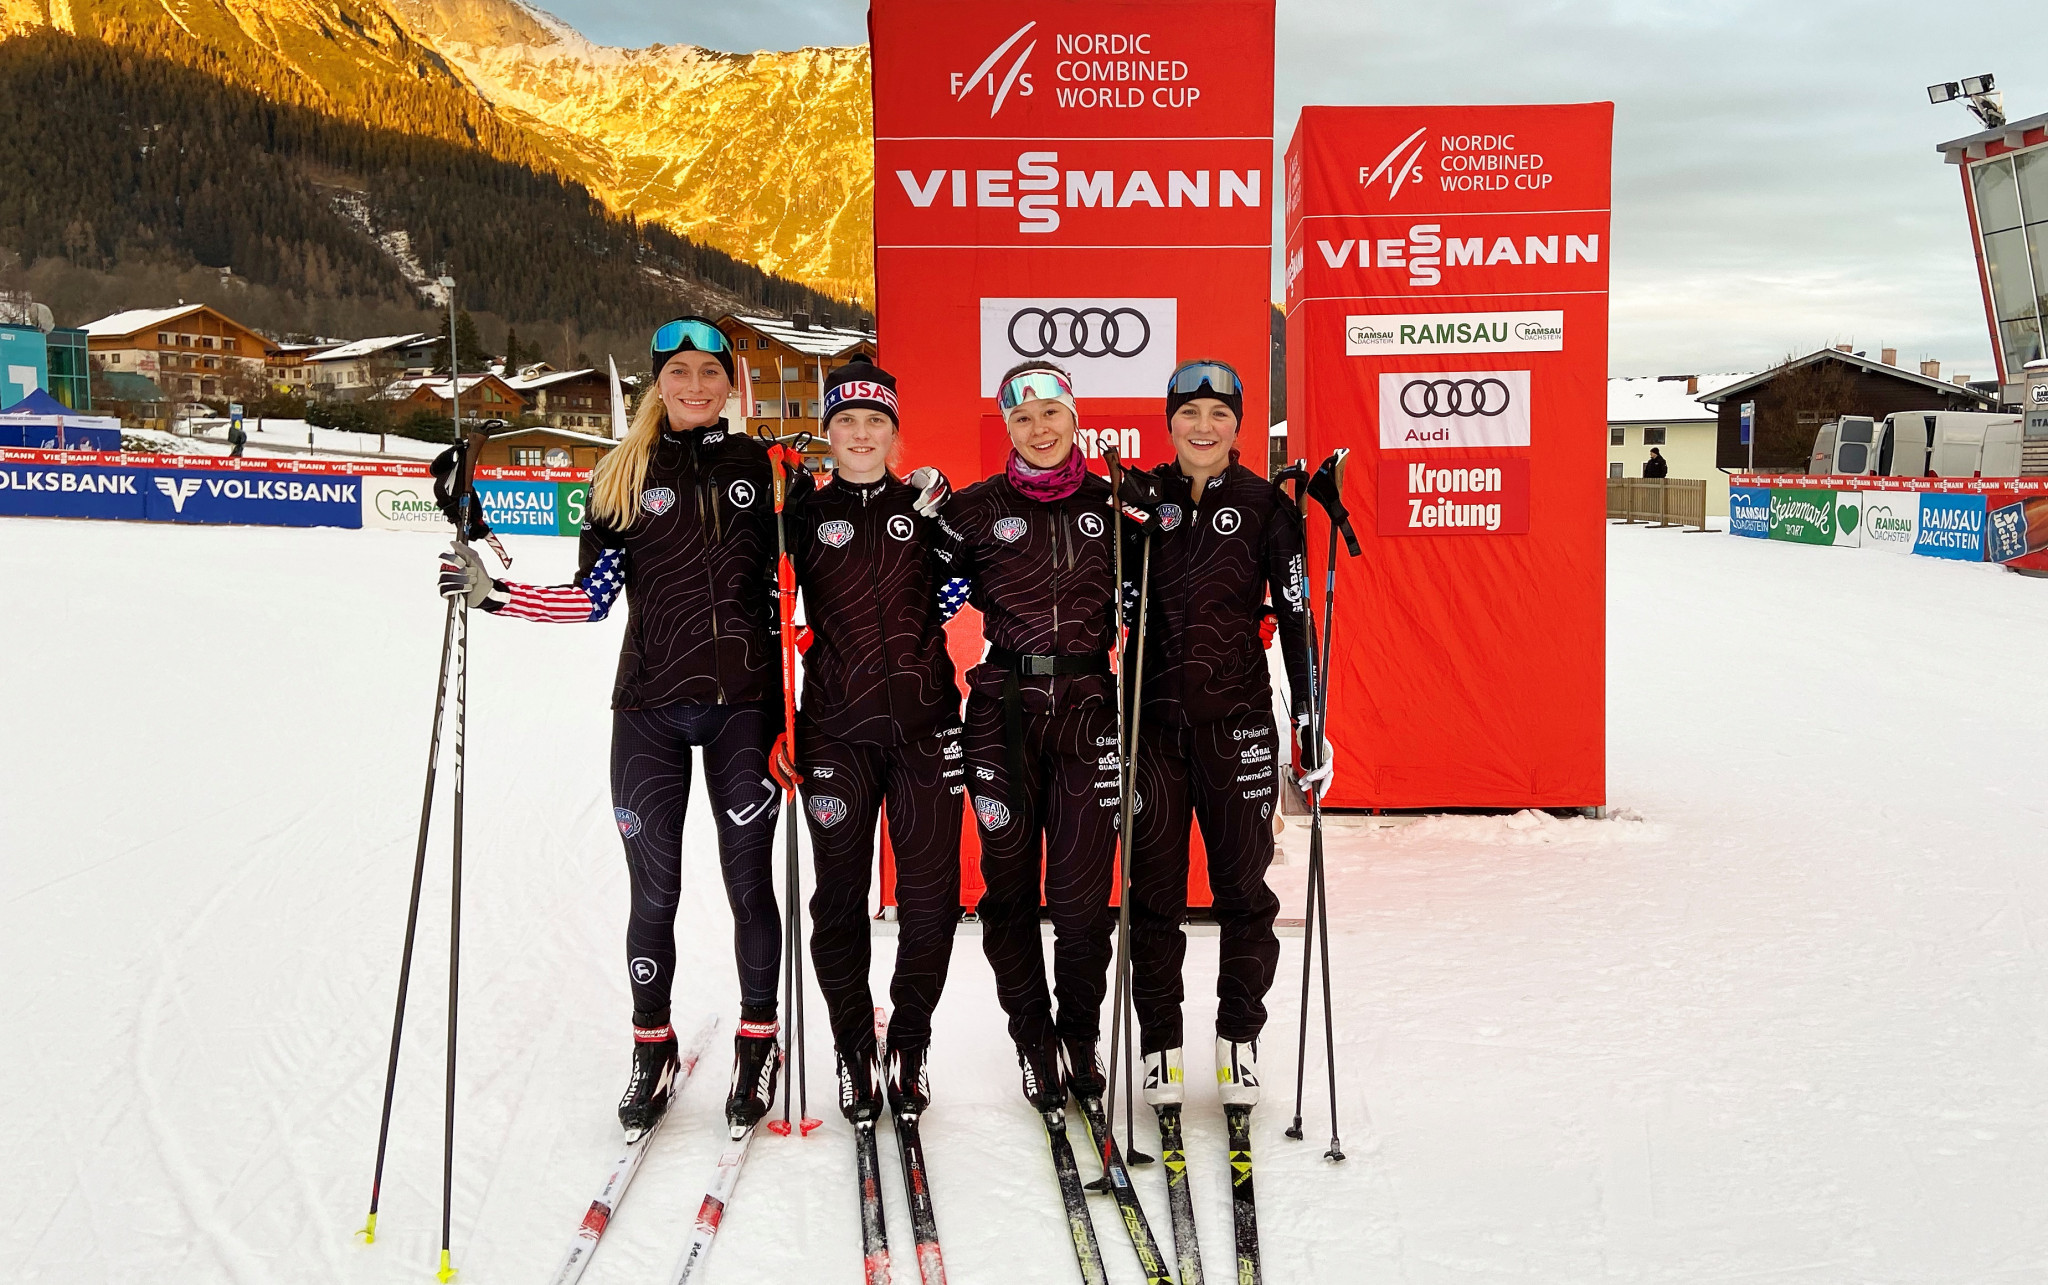 USA Nordic athletes show off their new uniforms made by Podiumwear ©Getty Images